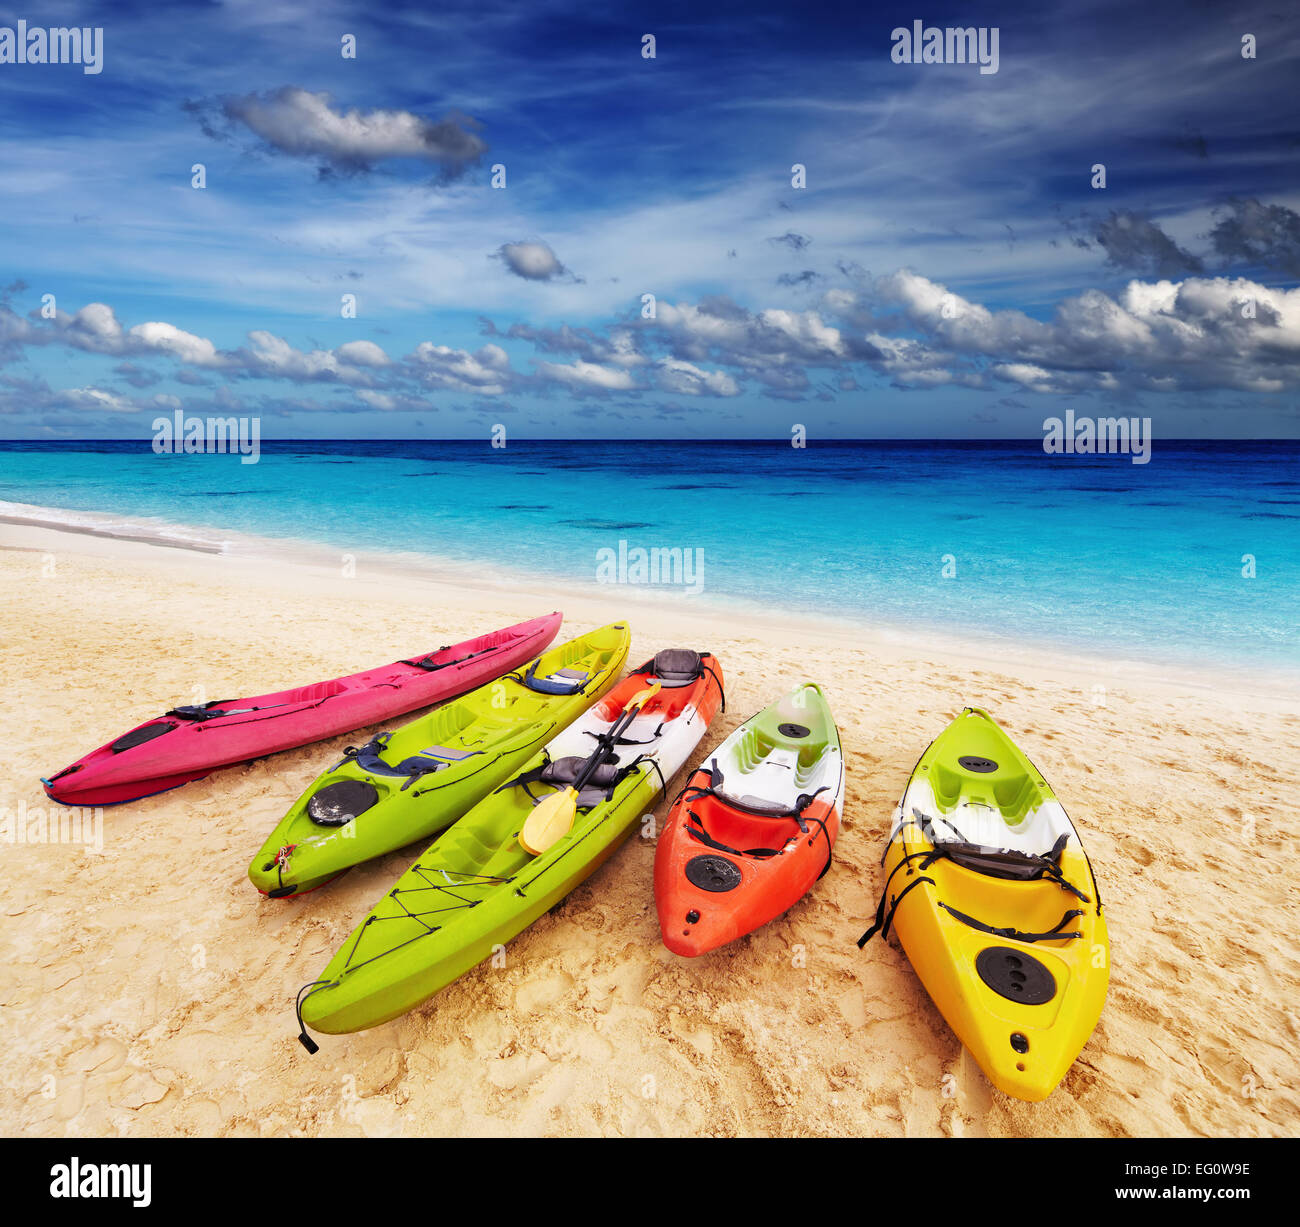 Colorful kayaks on the tropical beach, Thailand - Stock Image